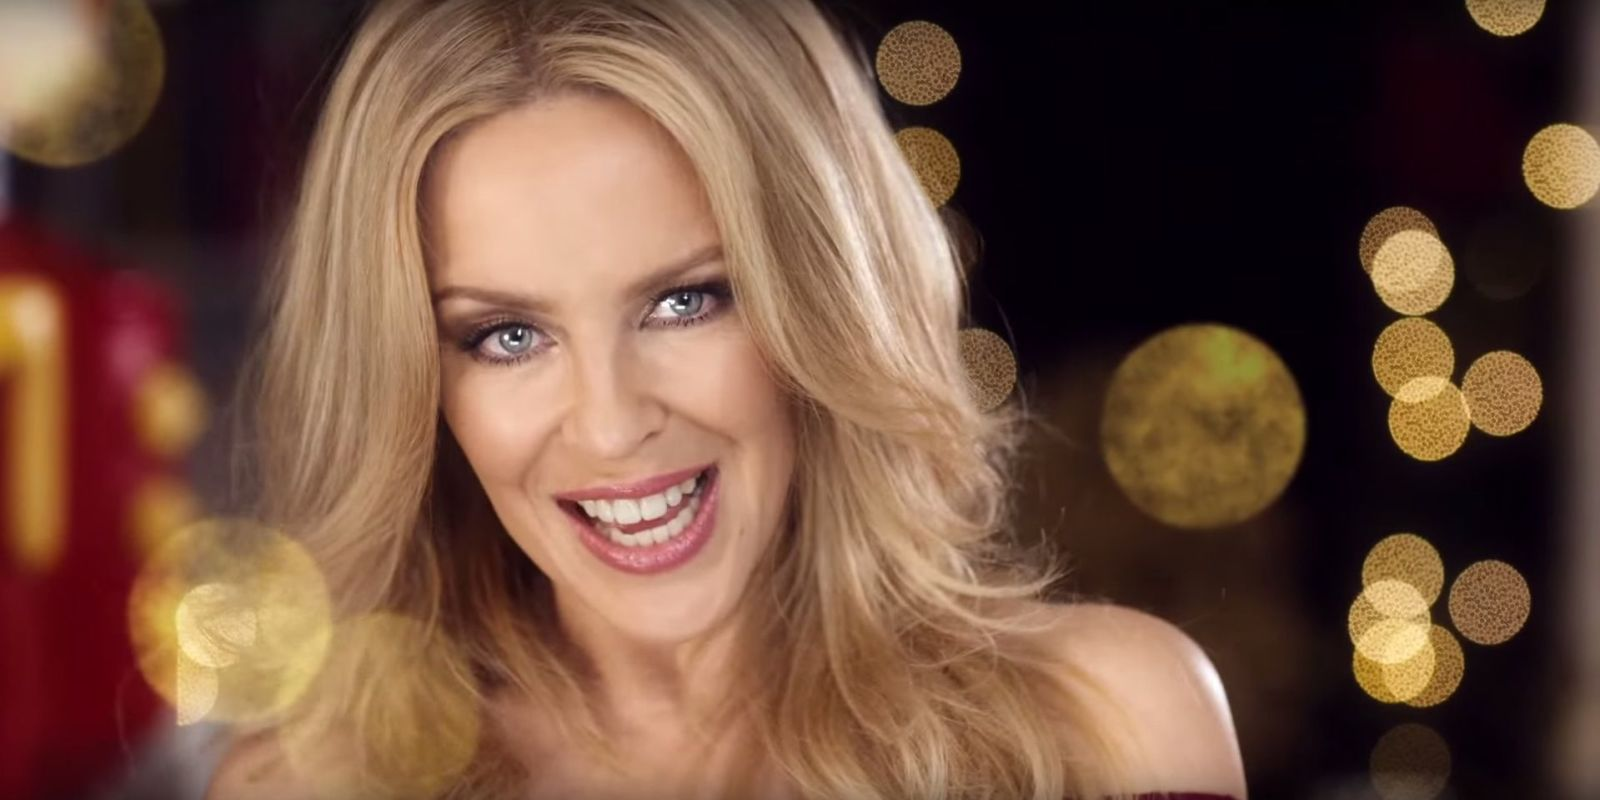 Kyllie Minogue Pics, Music Collection